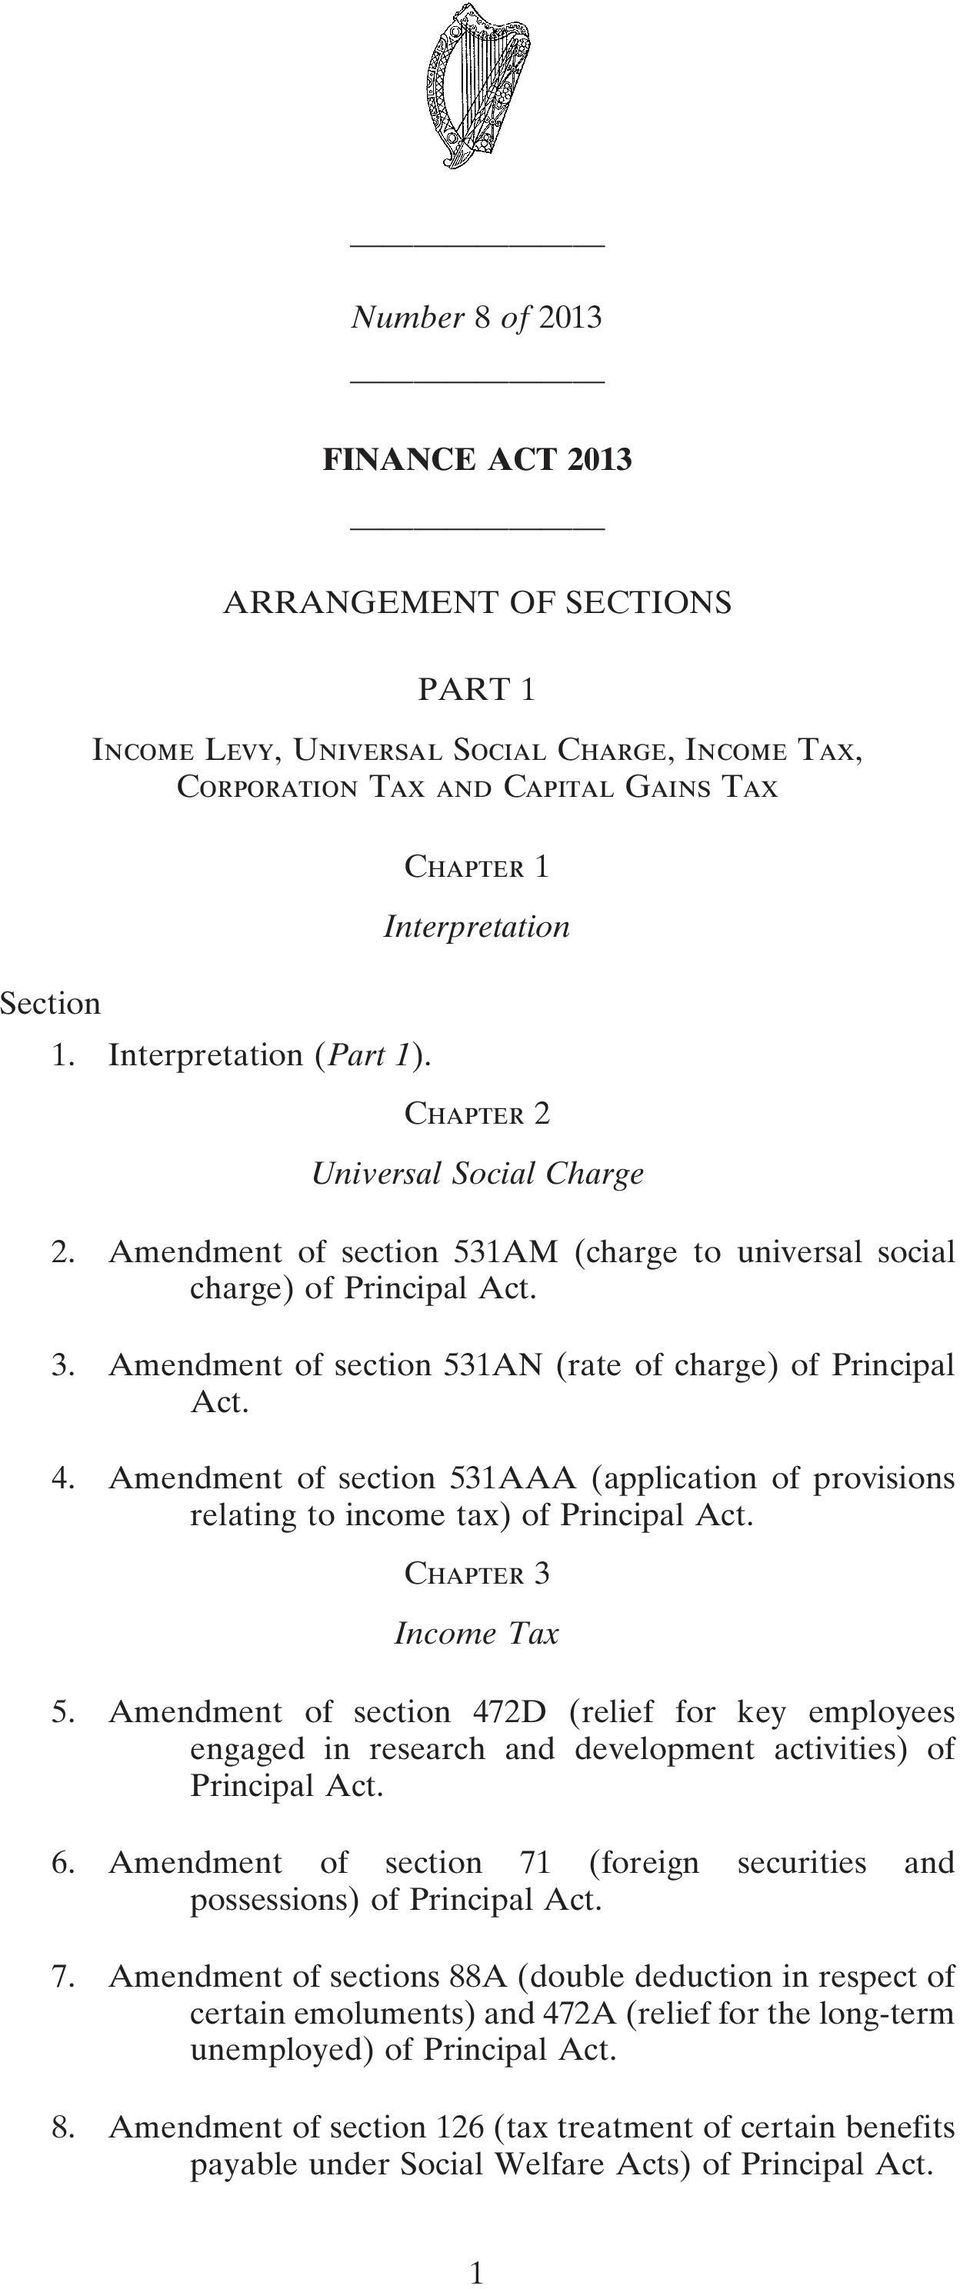 Amendment of section 531AN (rate of charge) of Principal Act. 4. Amendment of section 531AAA (application of provisions relating to income tax) of Principal Act. Chapter 3 Income Tax 5.